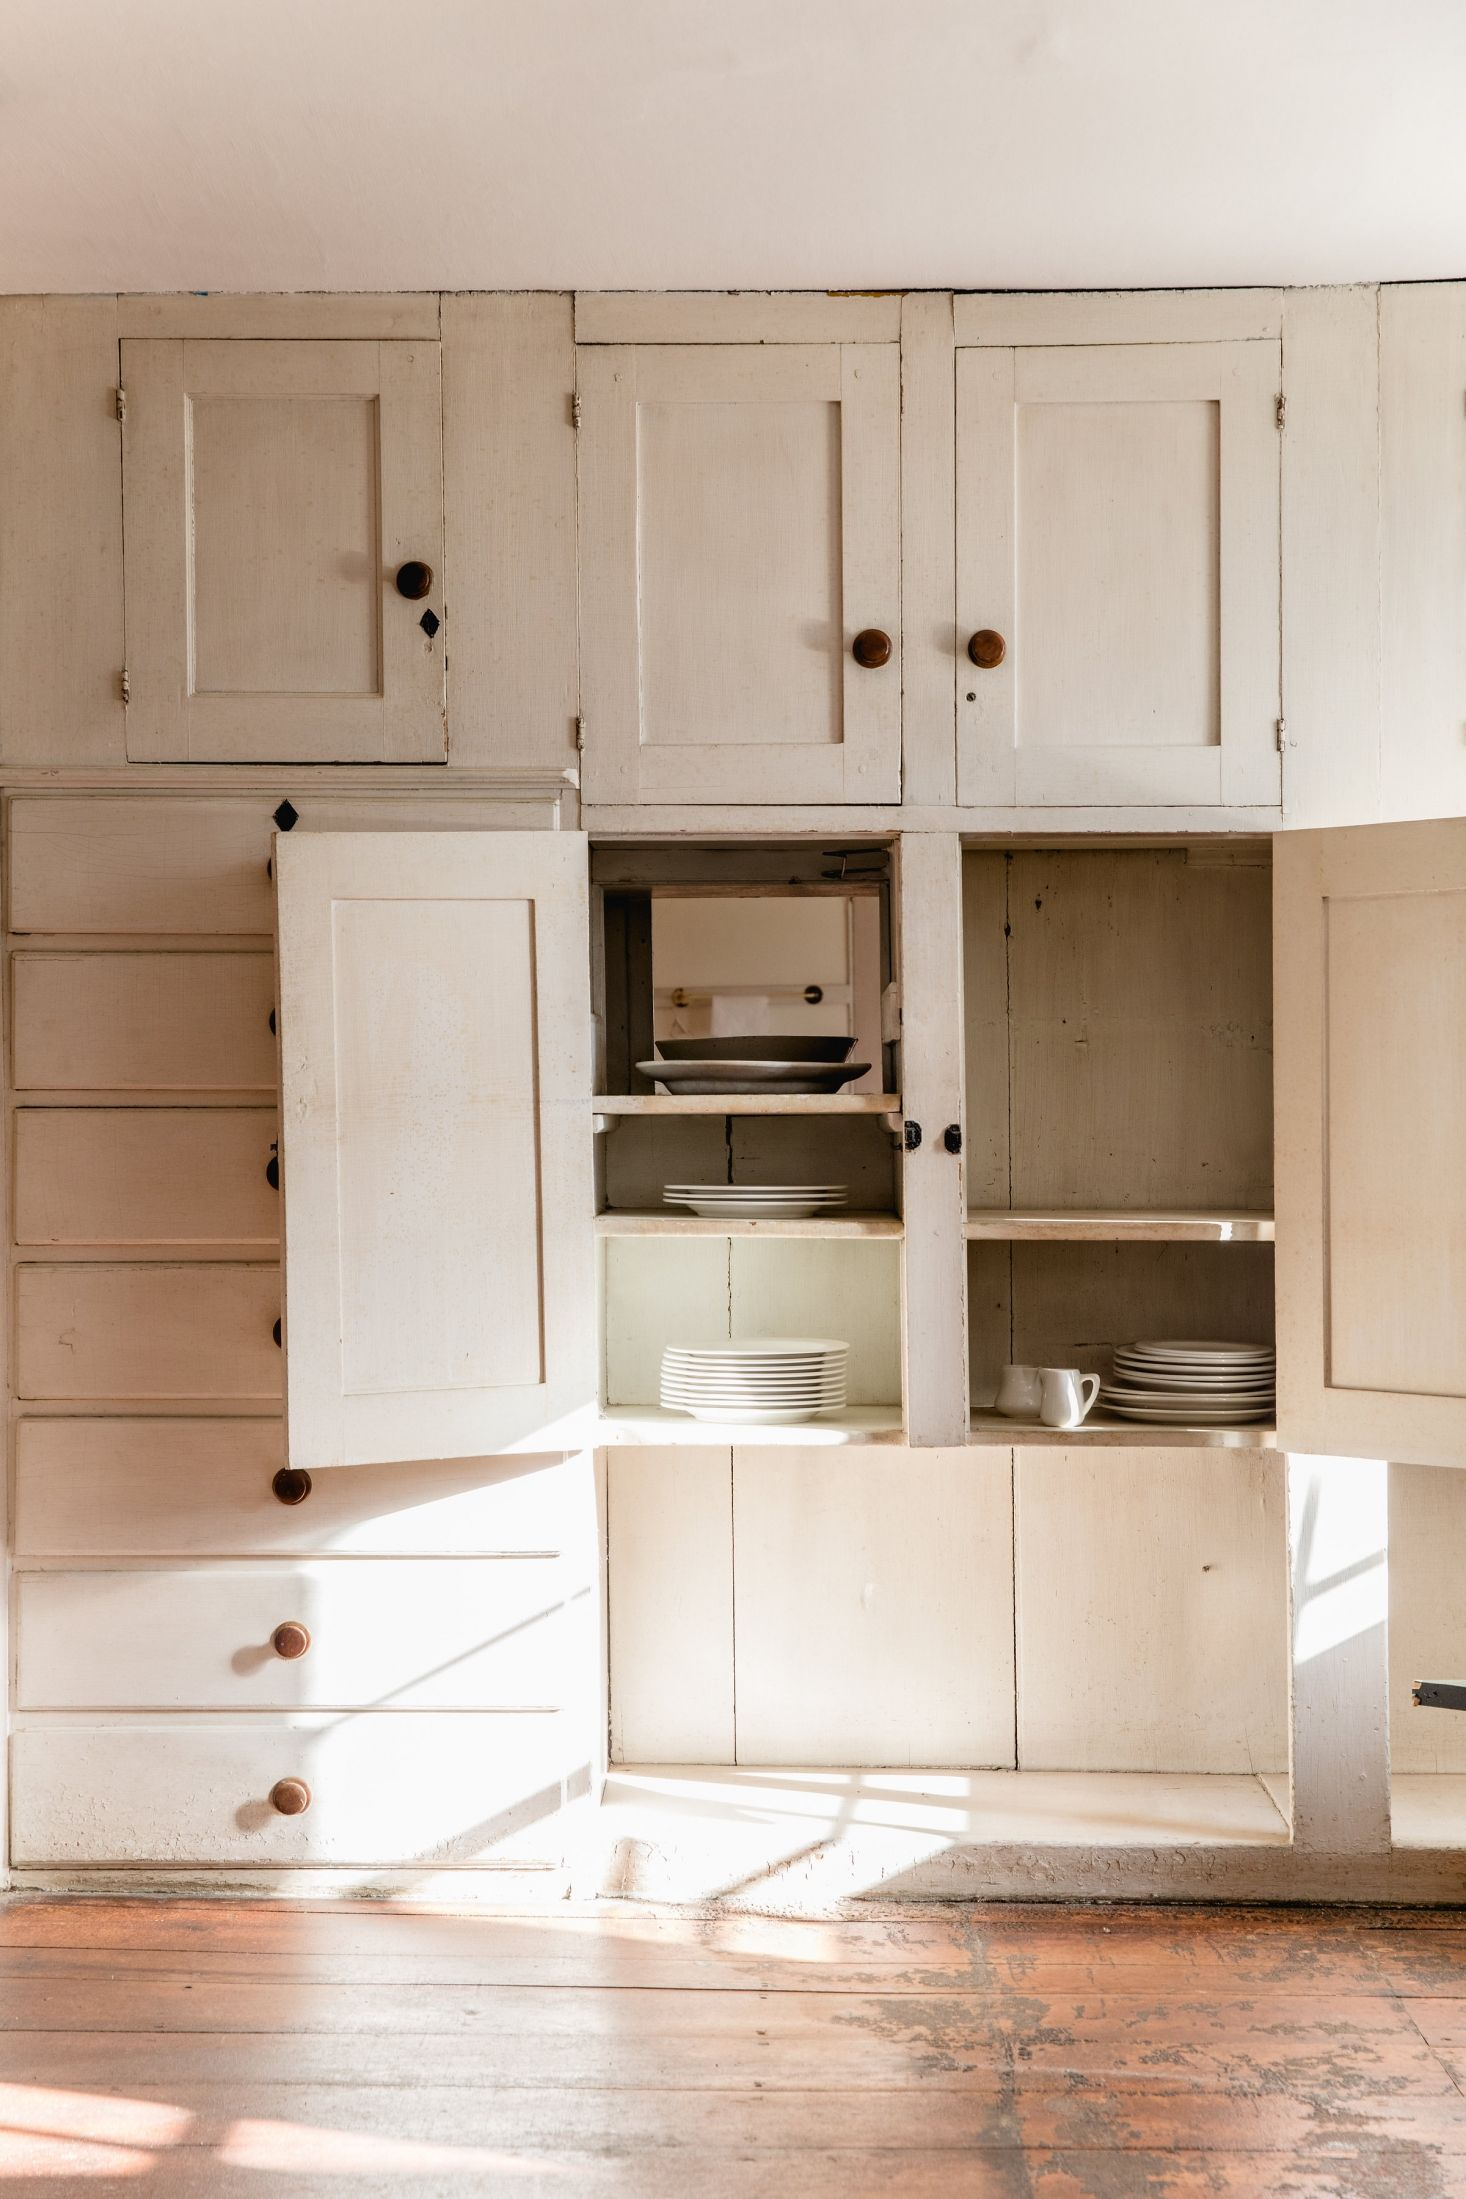 A china cabinet separating two dining rooms